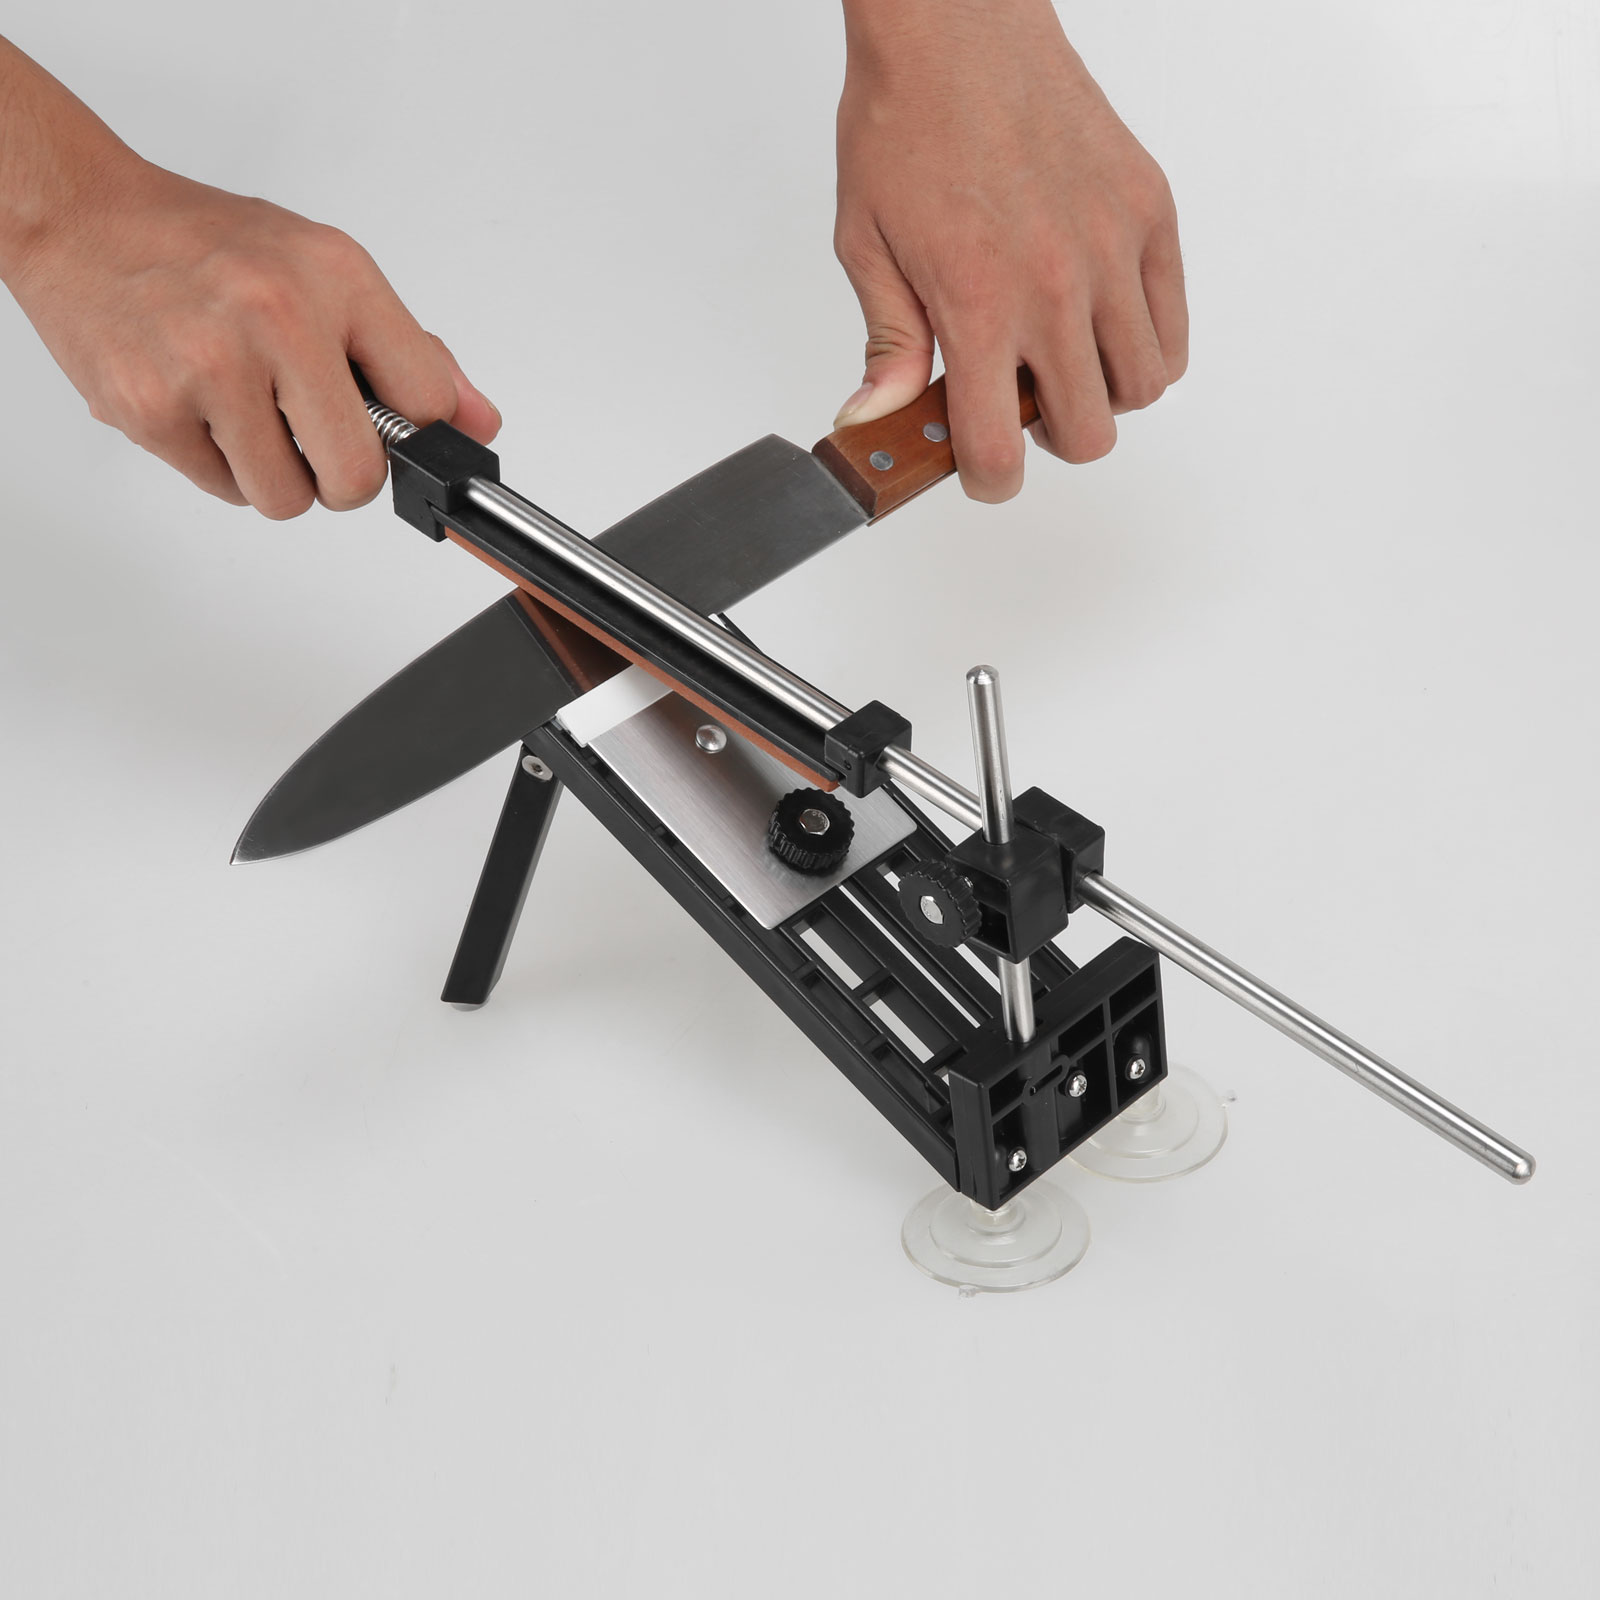 Knife Sharpening System Professional Knife Sharpening System Kitchen Sharpener